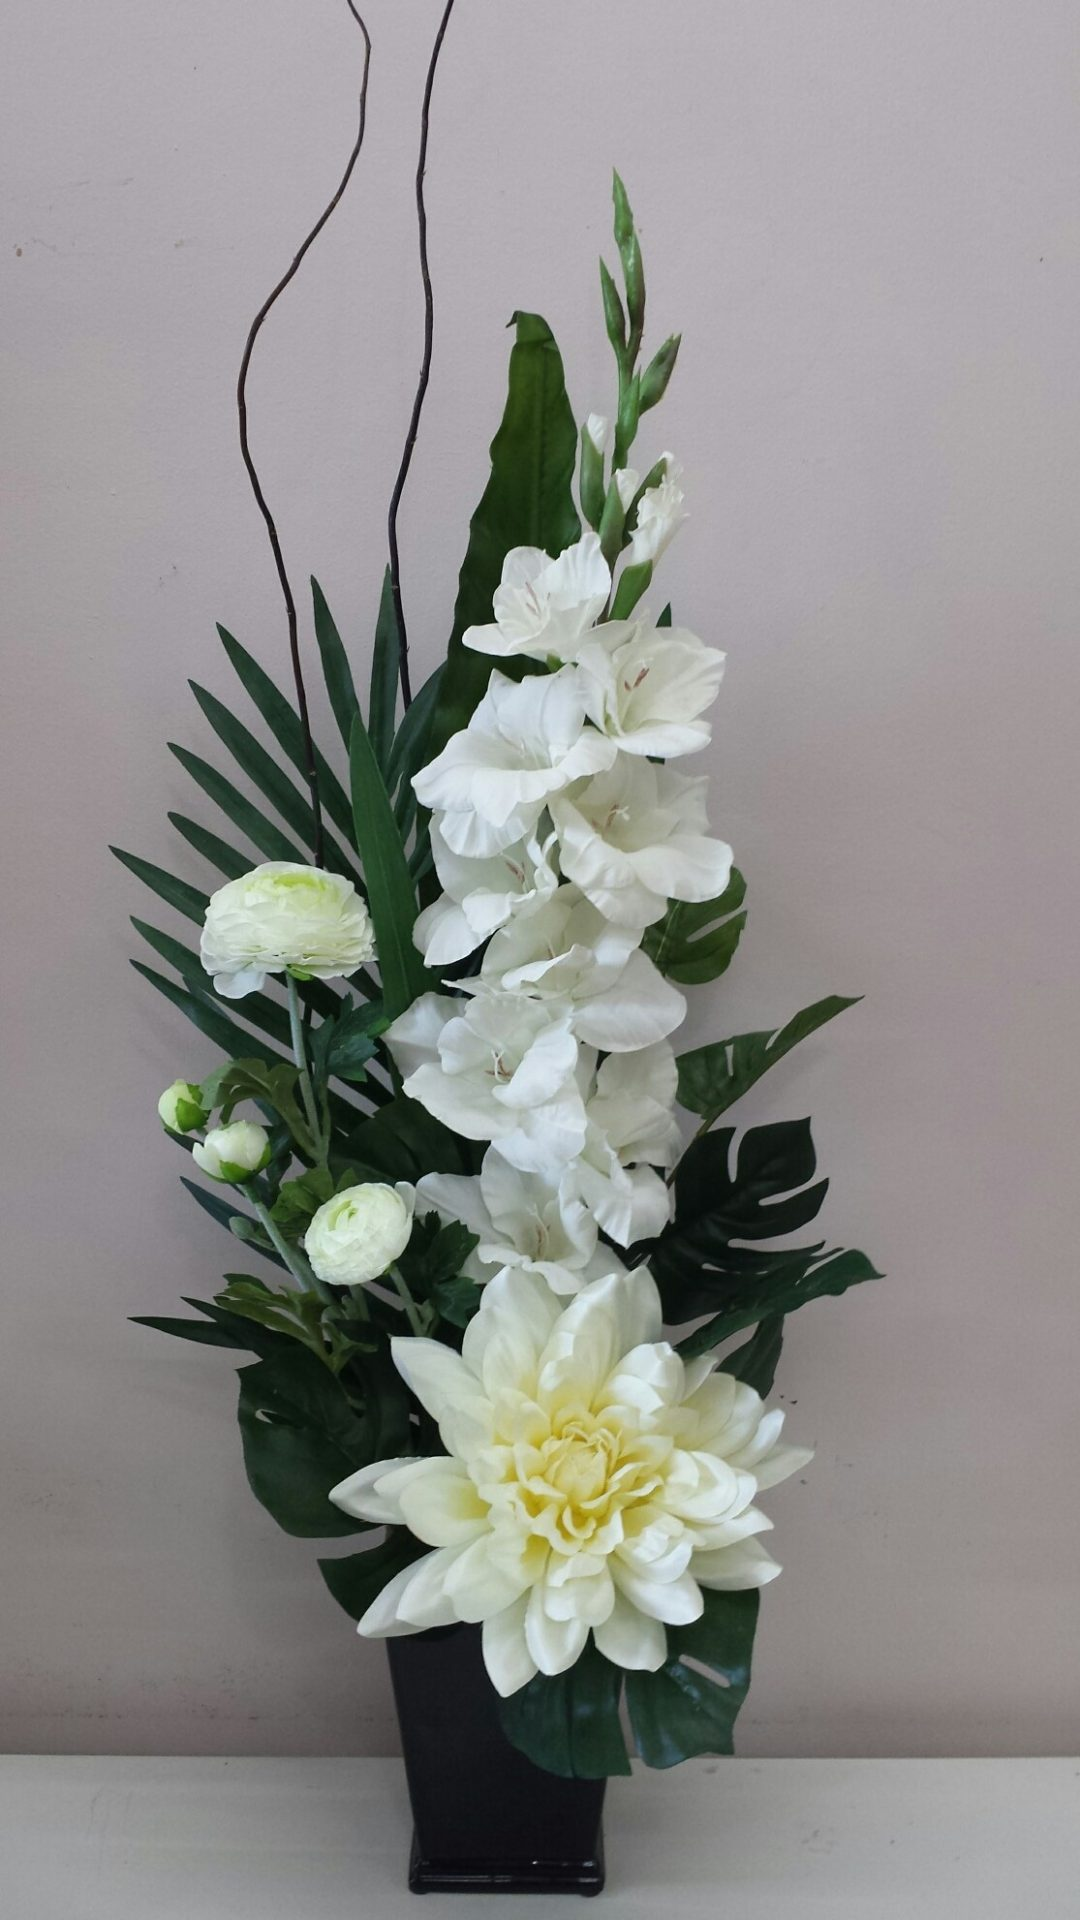 Gladioli, Dahlia and white mix flowers